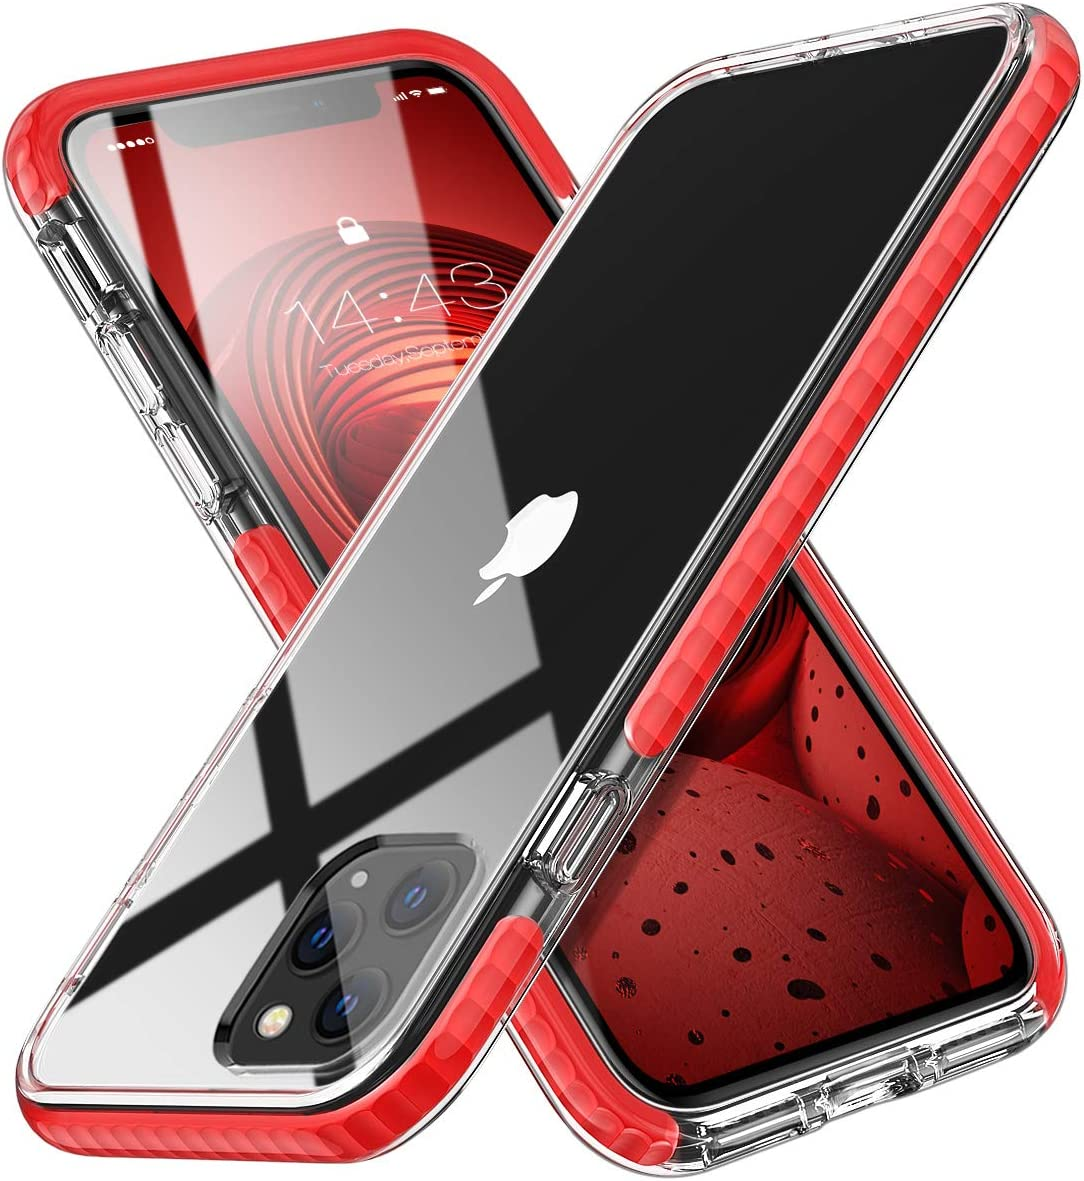 MATEPROX iPhone 11 Pro Max Case Clear Thin Slim Crystal Transparent Cover Shockproof Bumper Case for iPhone 11 Pro Max 6.5 inch(Red)